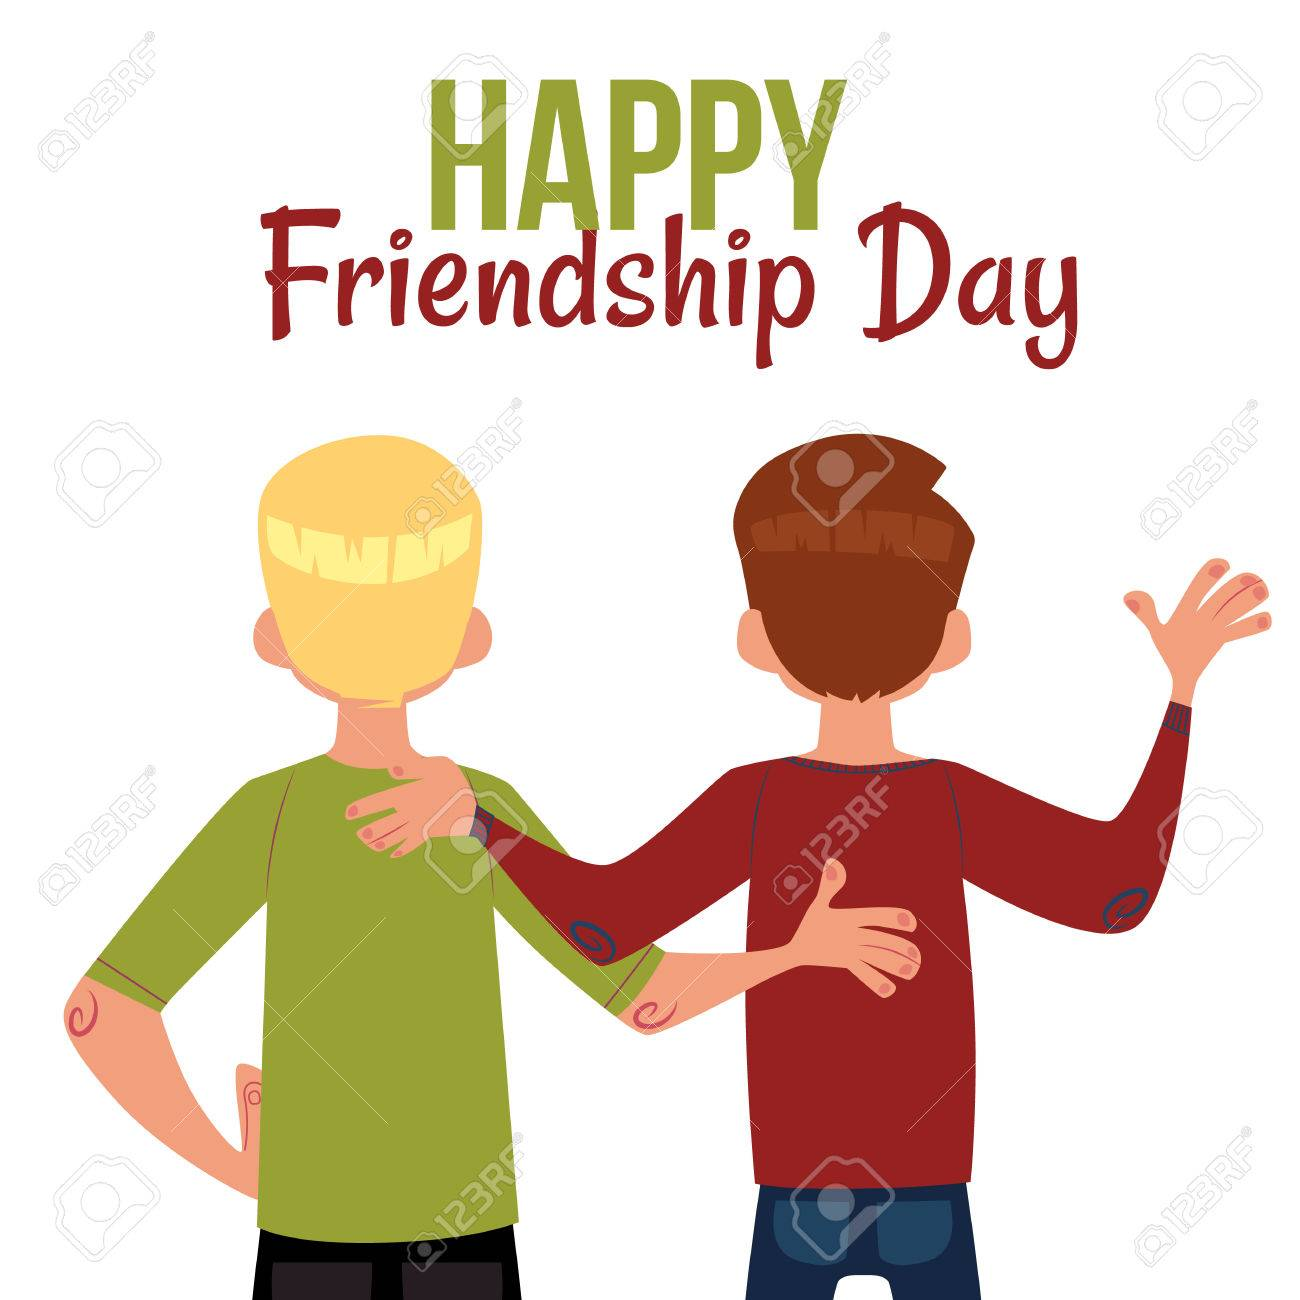 Happy friendship day greeting card with back view of two men happy friendship day greeting card with back view of two men friends hugging cartoon m4hsunfo